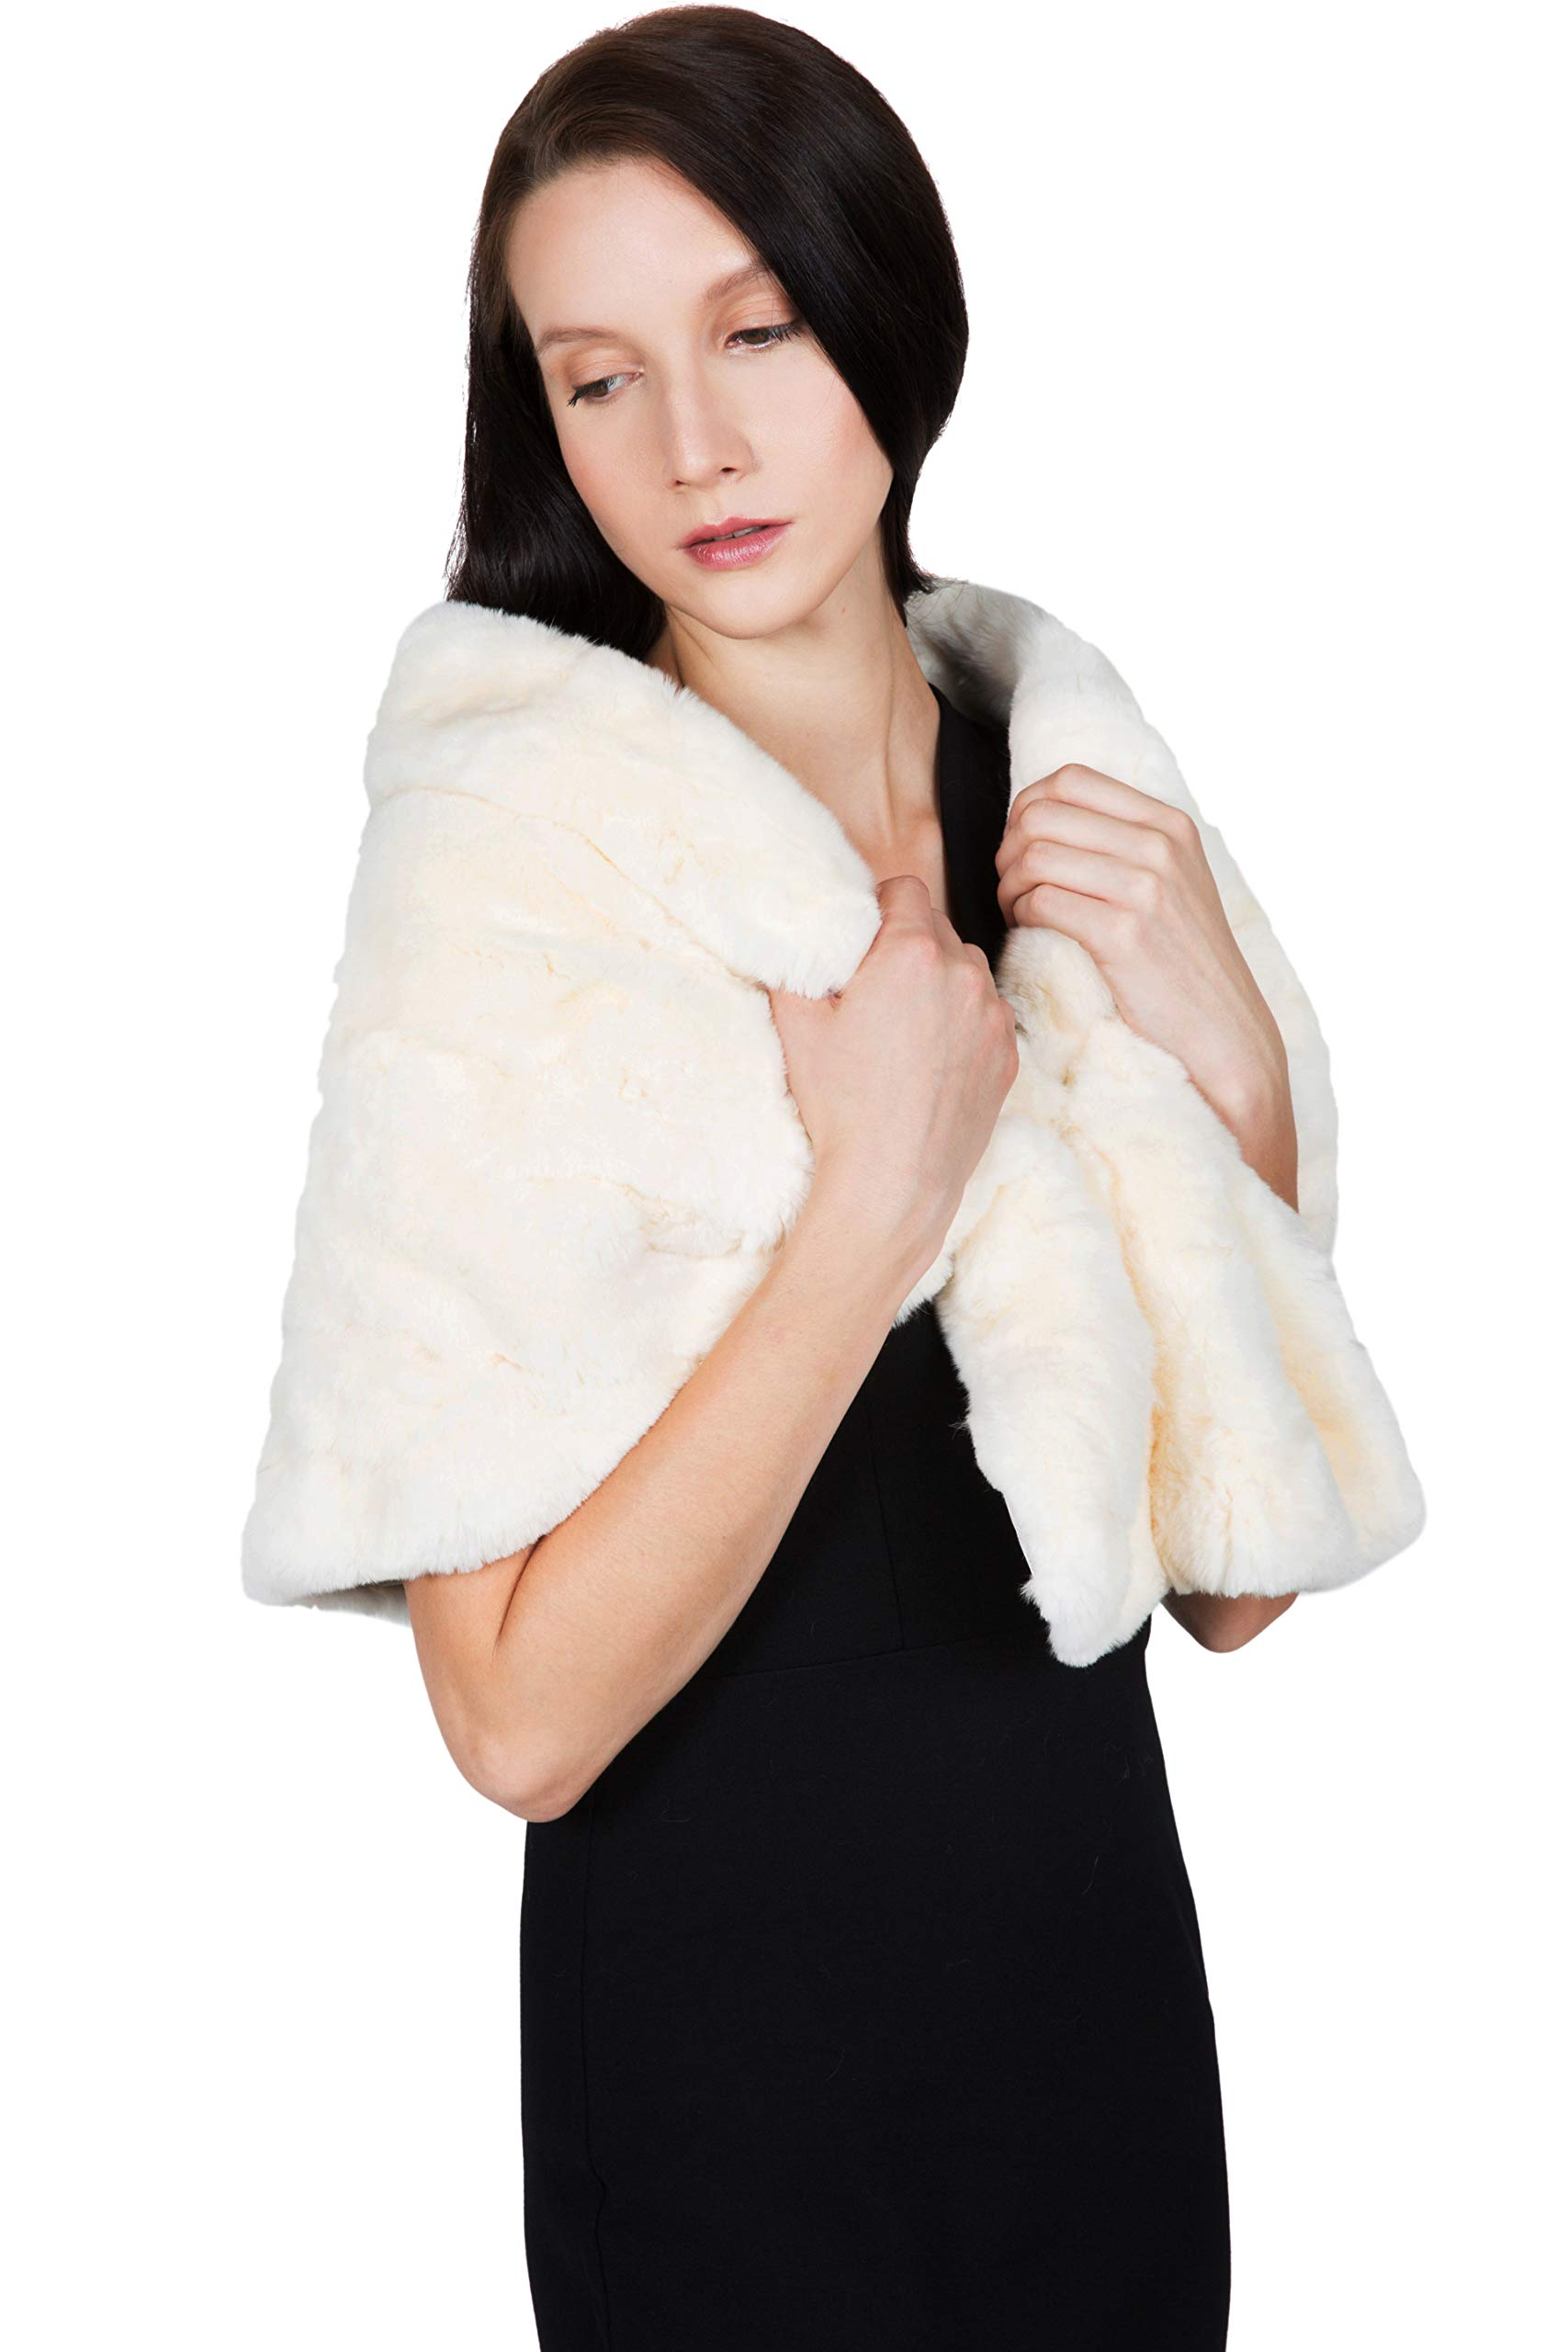 OBURLA Women's Rex Rabbit Fur Cape with Collar | Soft and Luxurious Real Fur Shawl Wrap Stole (Beige) by OBURLA (Image #3)